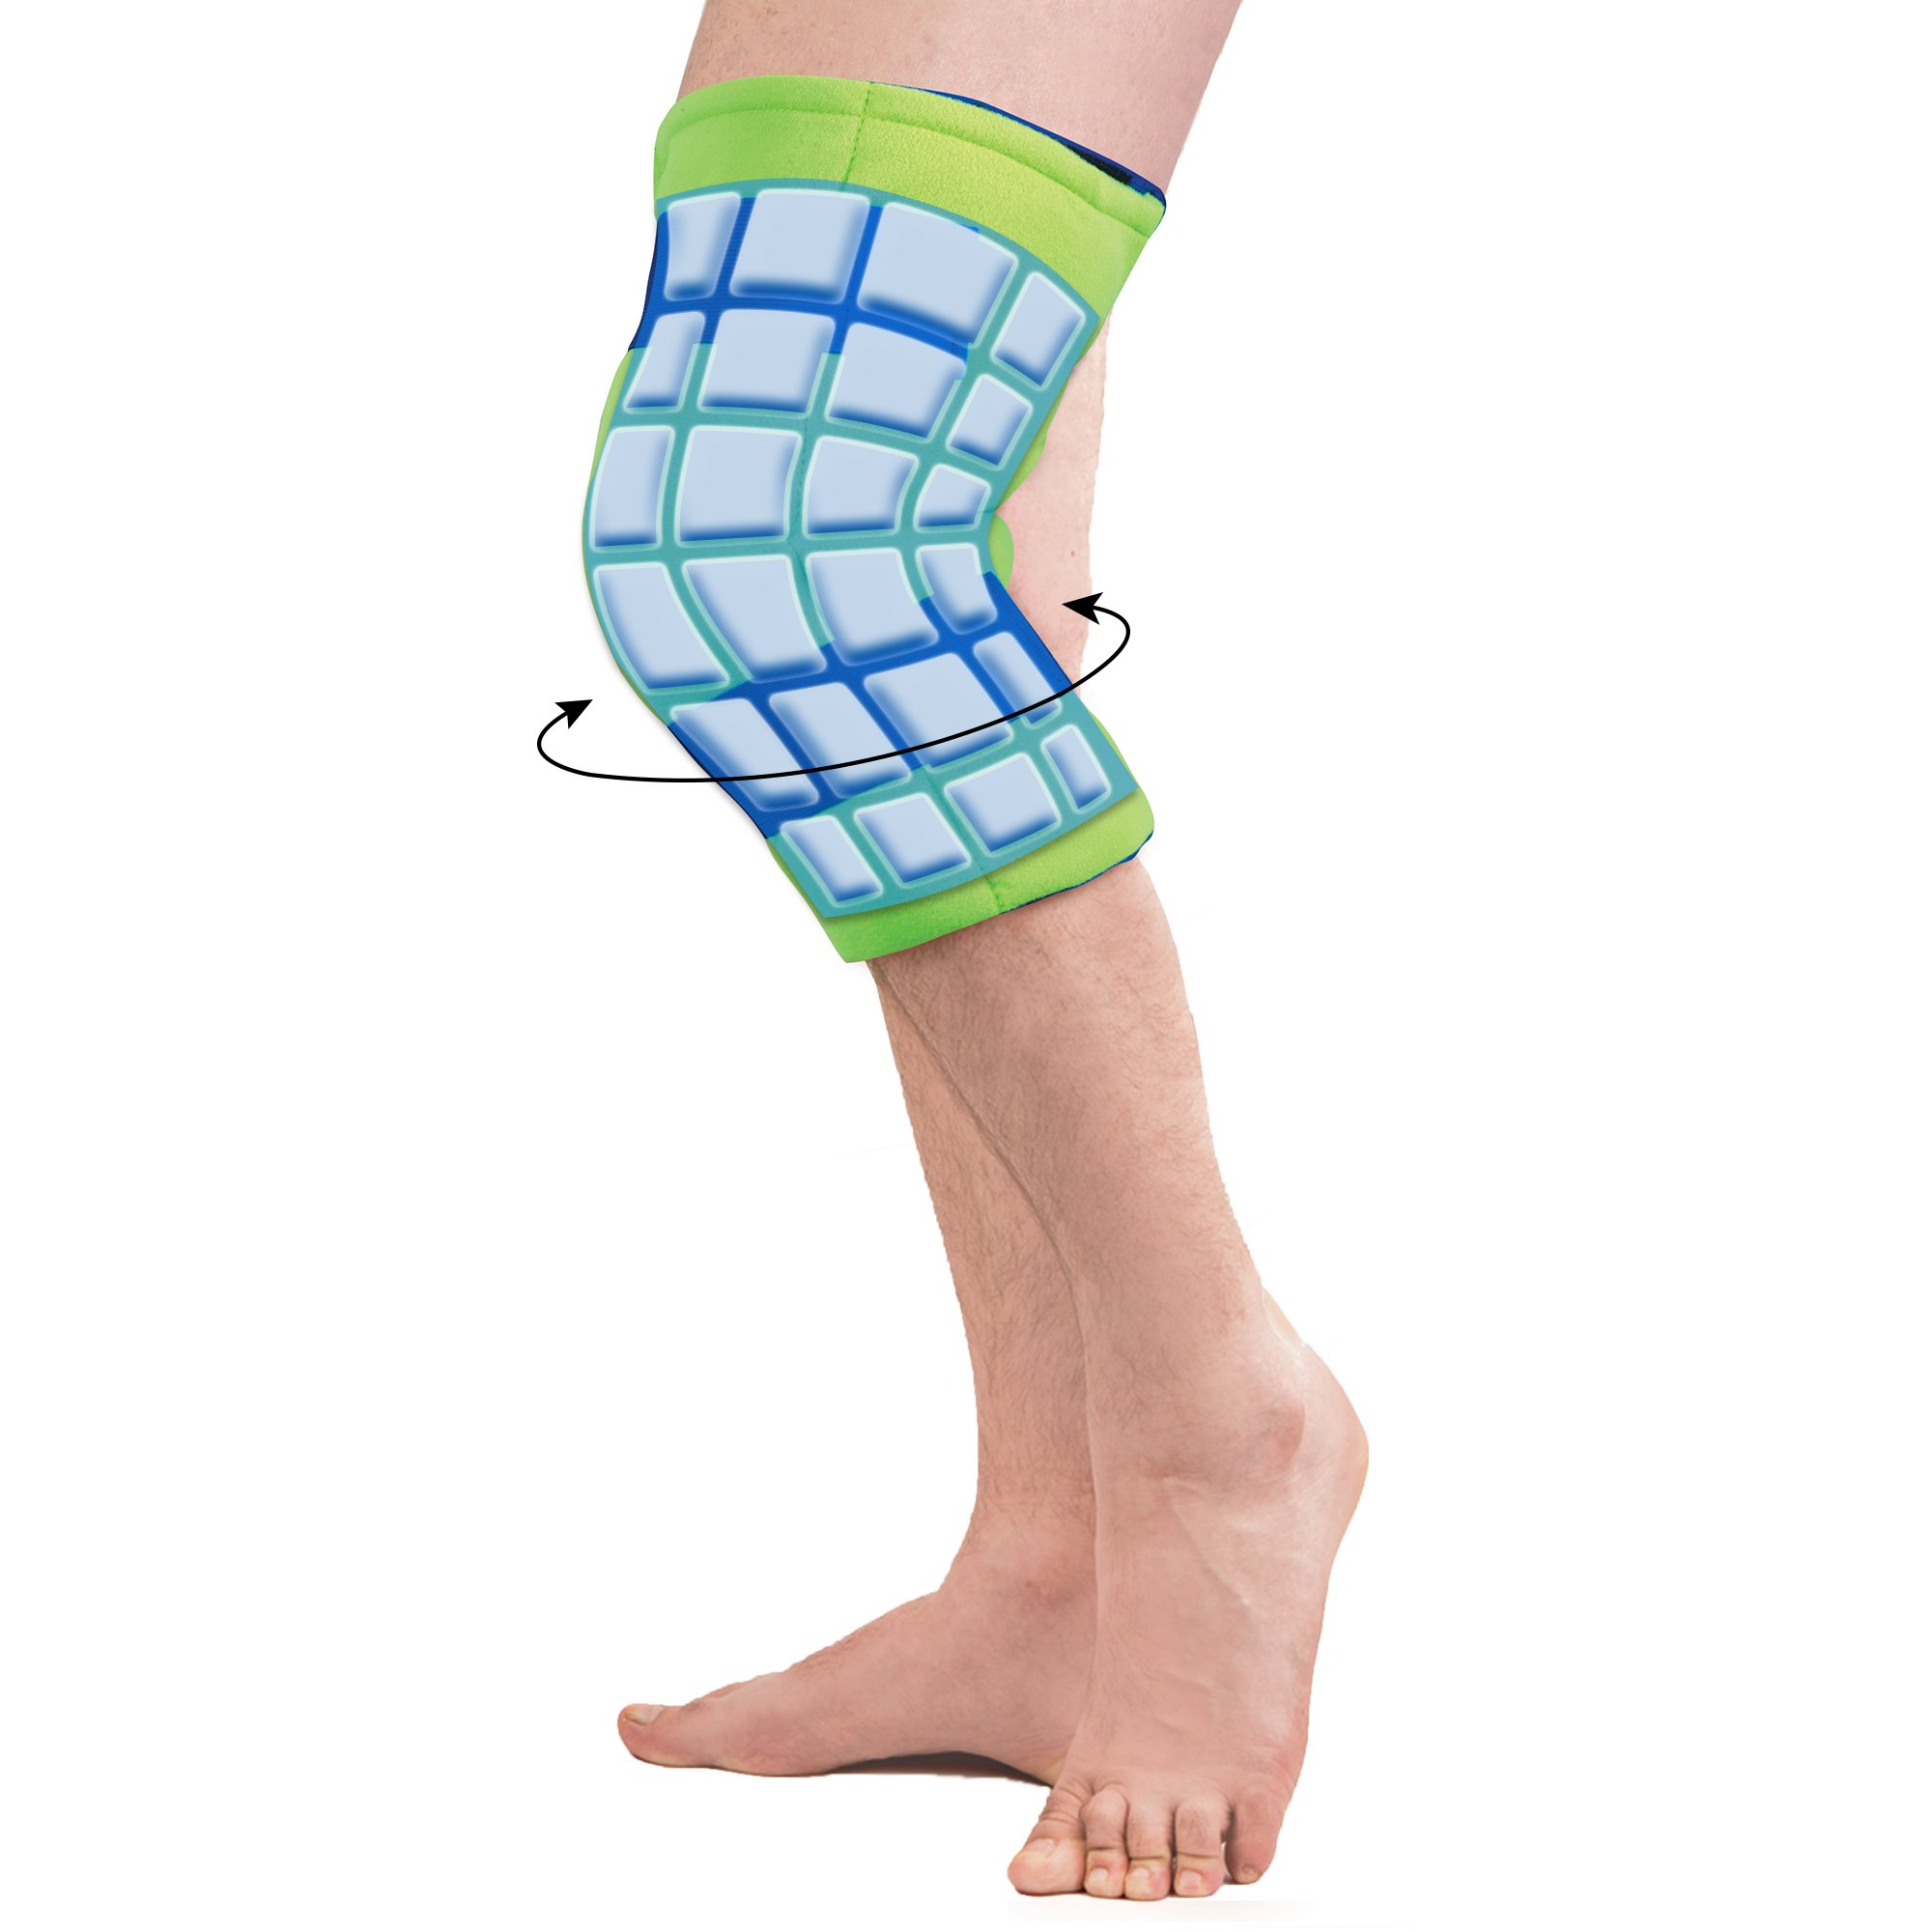 Polar Ice Large Knee Wrap Cold Therapy Wearable Ice Pack Adjustable Hook and Loop Closure (Color May Vary) by Brownmed (Image #3)